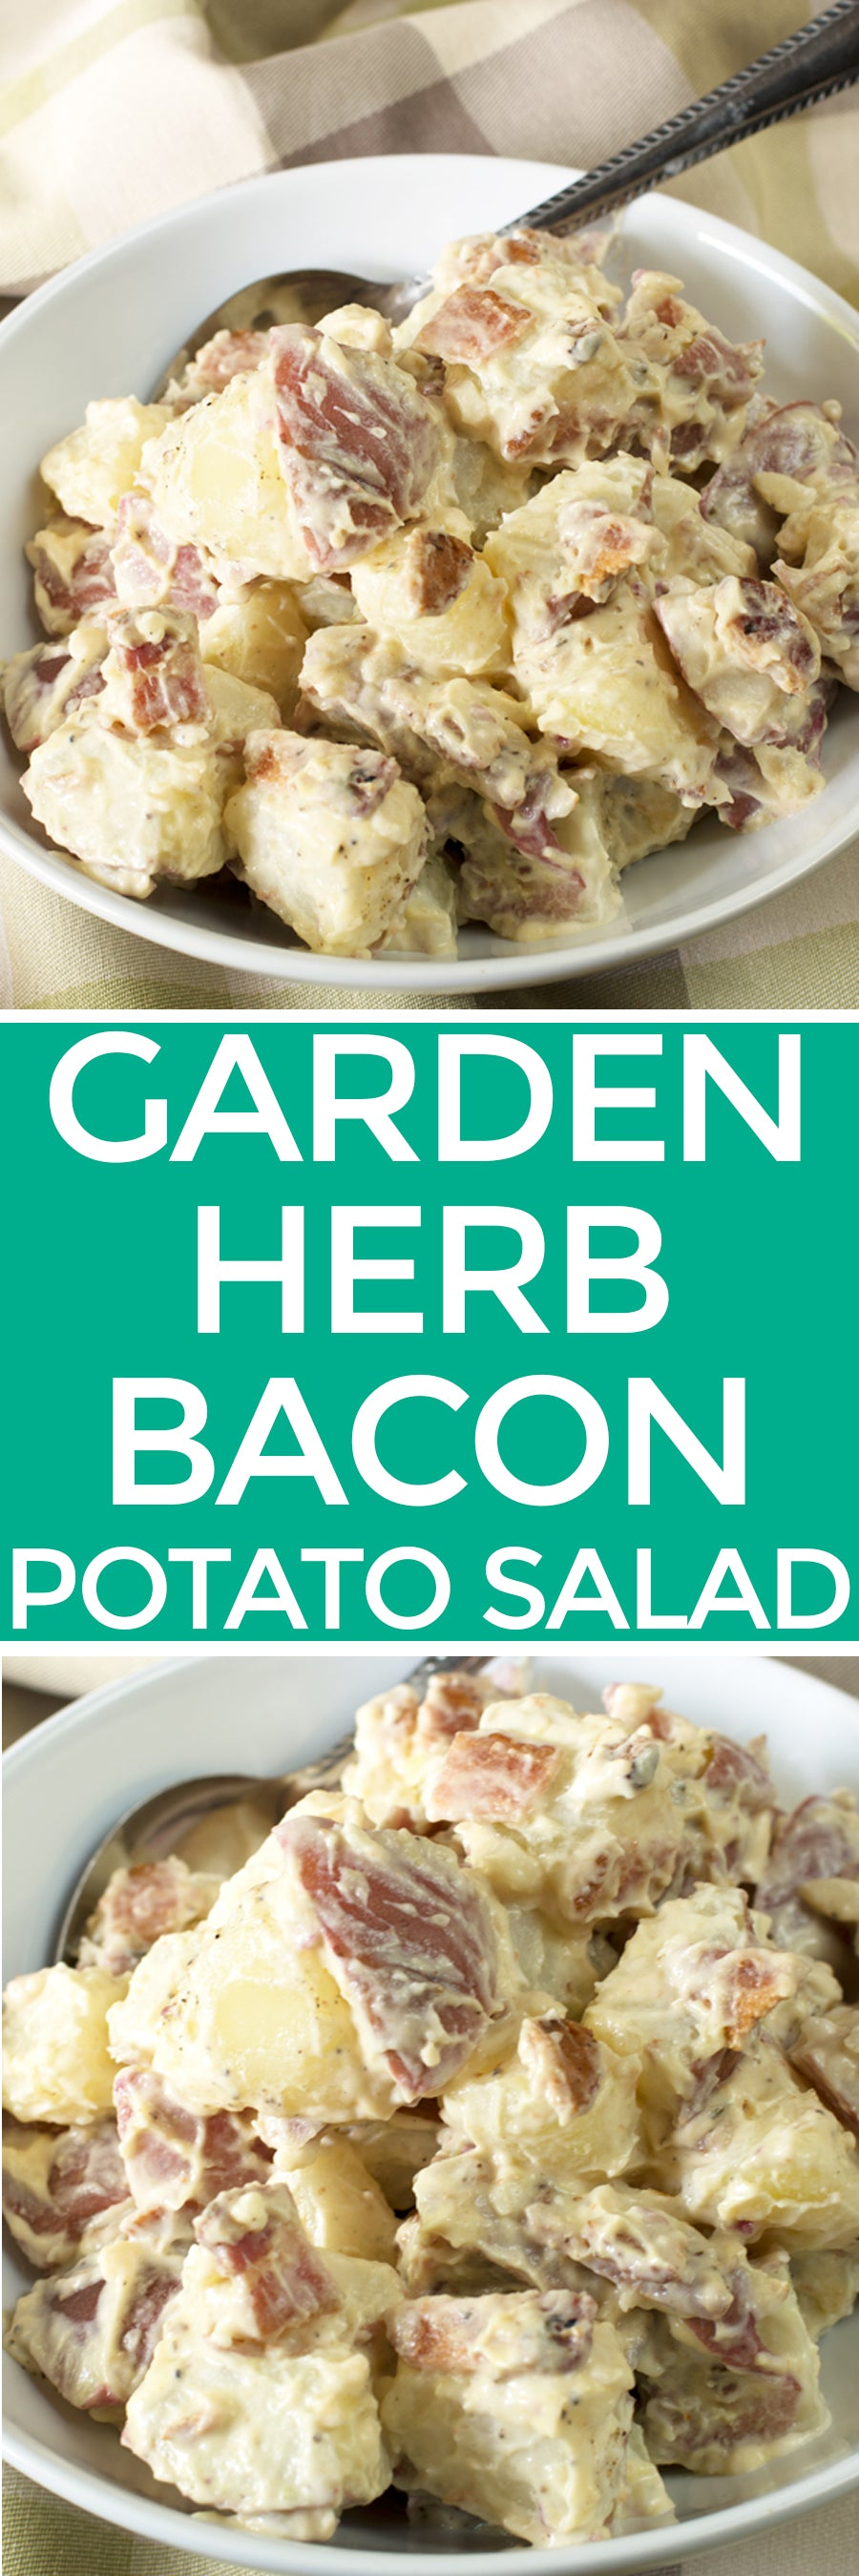 Garden Herb Bacon Potato Salad | pigofthemonth.com